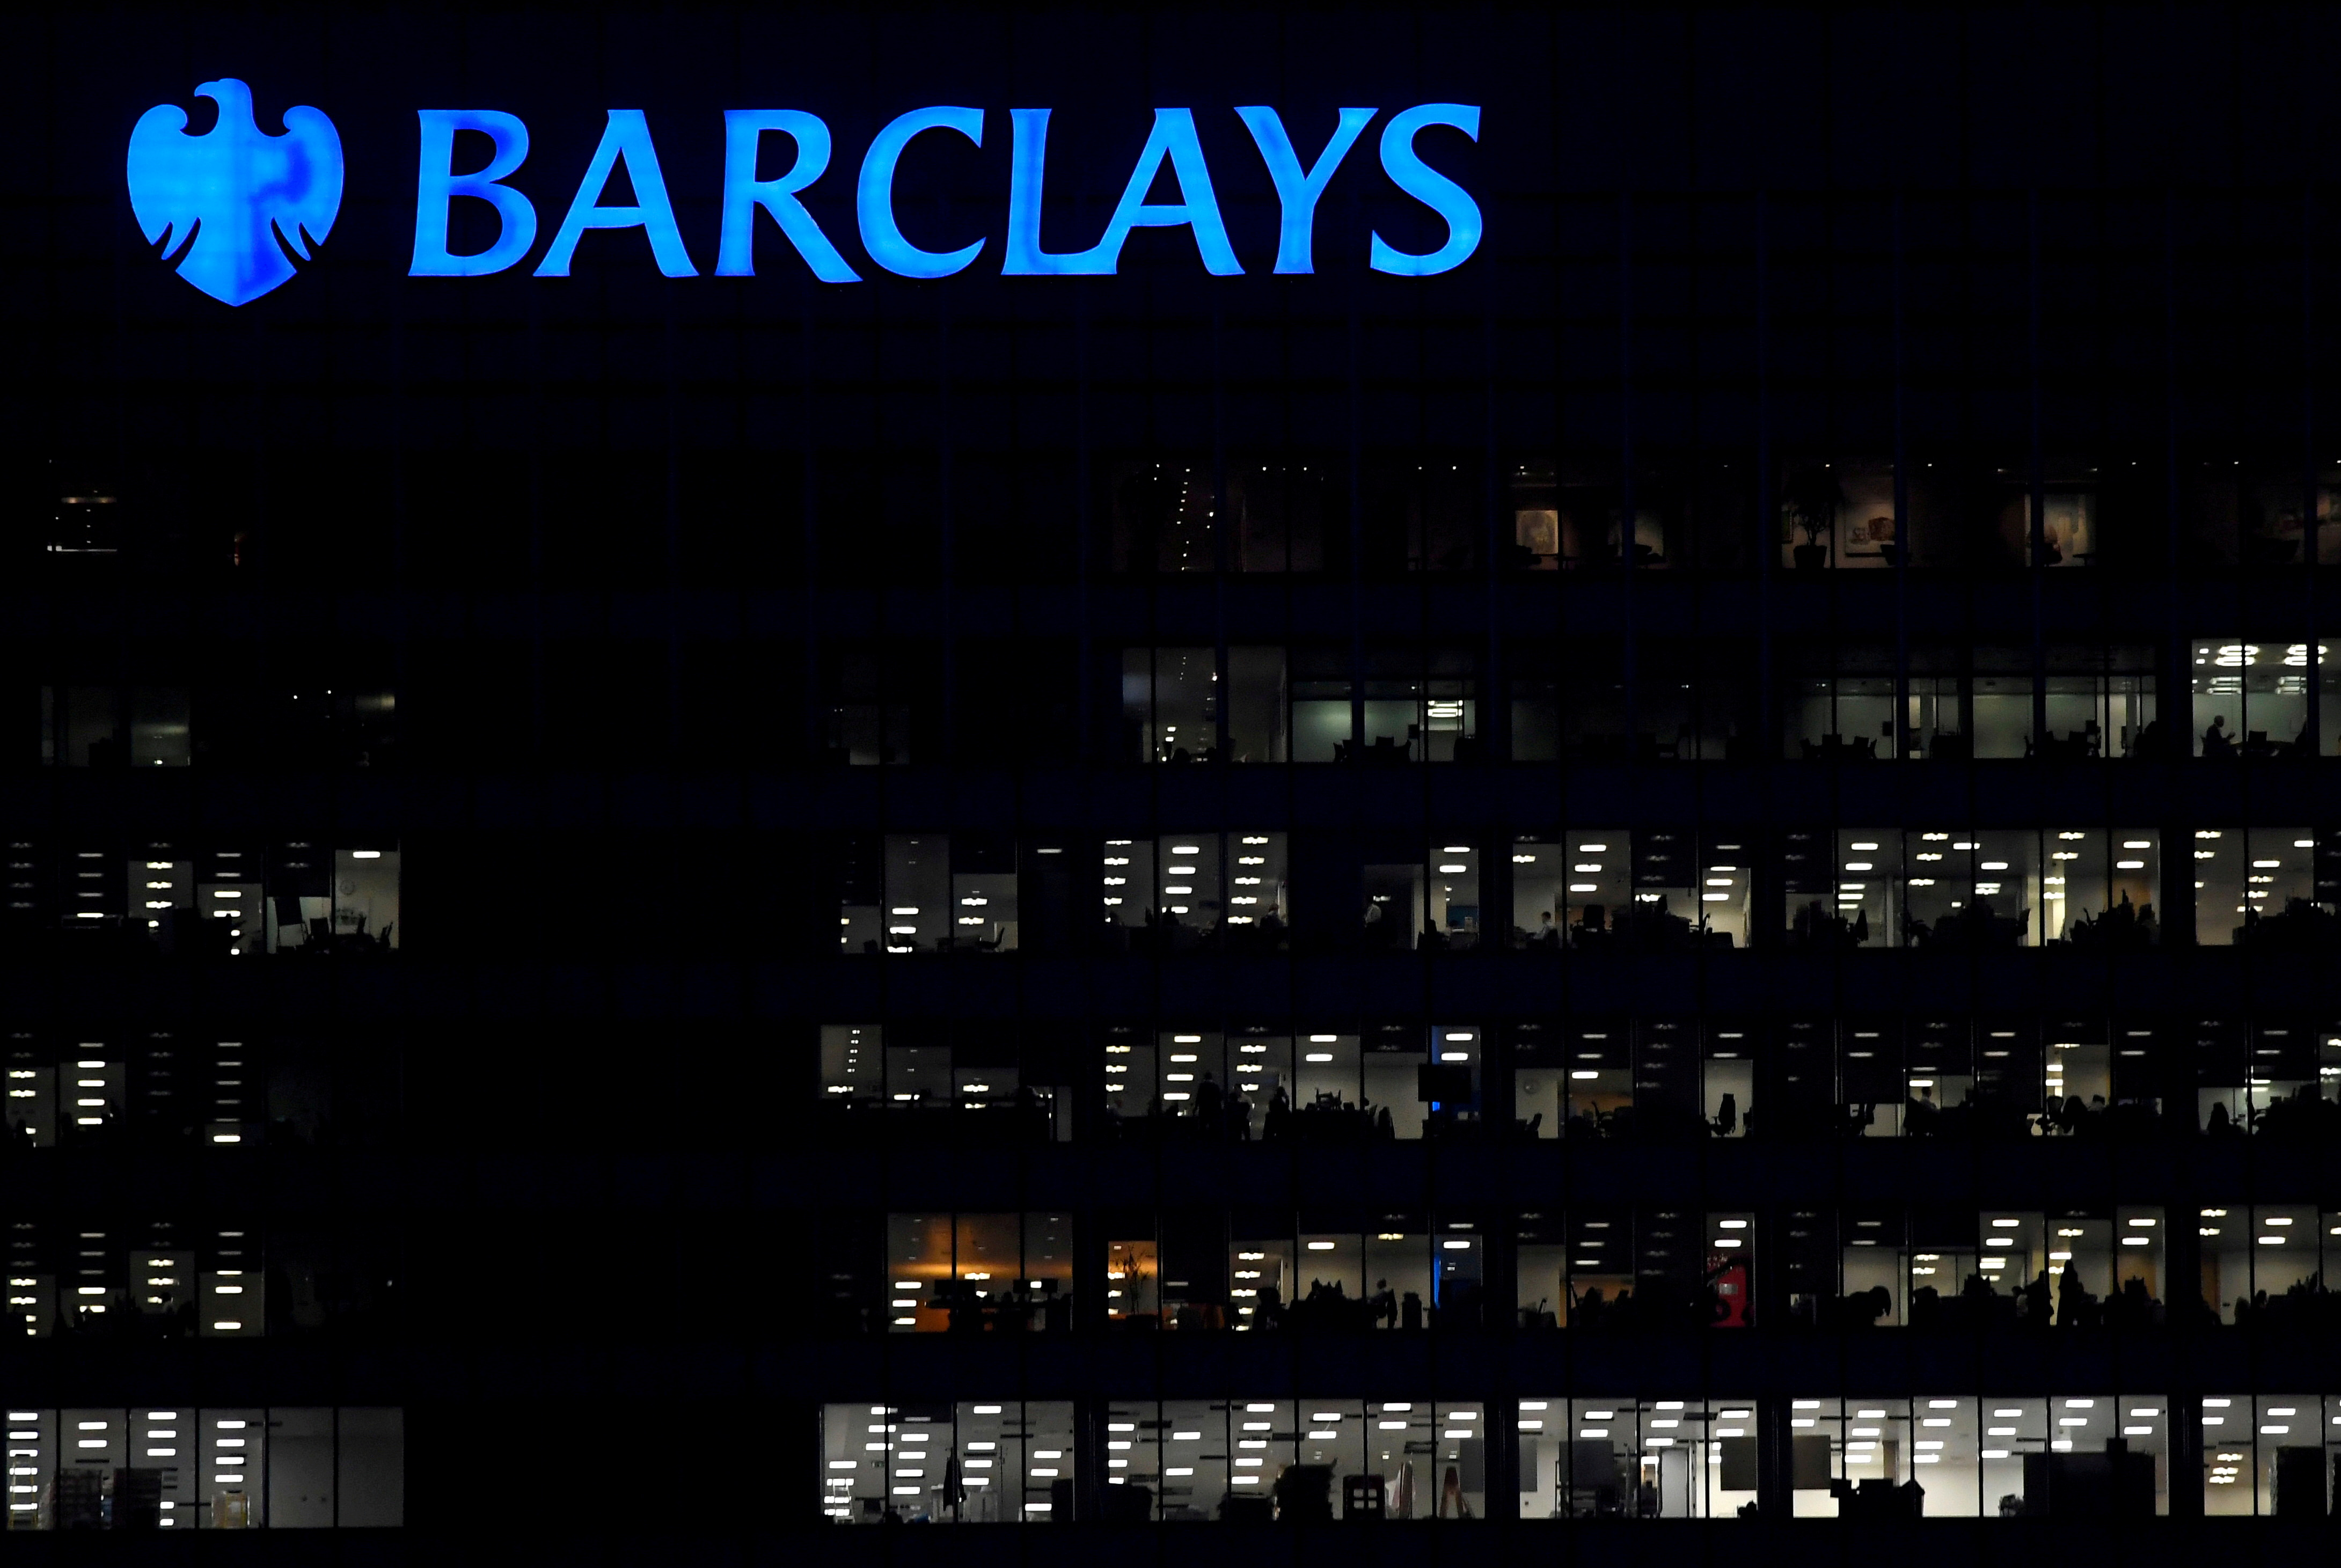 Workers are seen at Barclays bank offices in the Canary Wharf financial district in London, Britain, November 17, 2017.  REUTERS/Toby Melville/File Photo